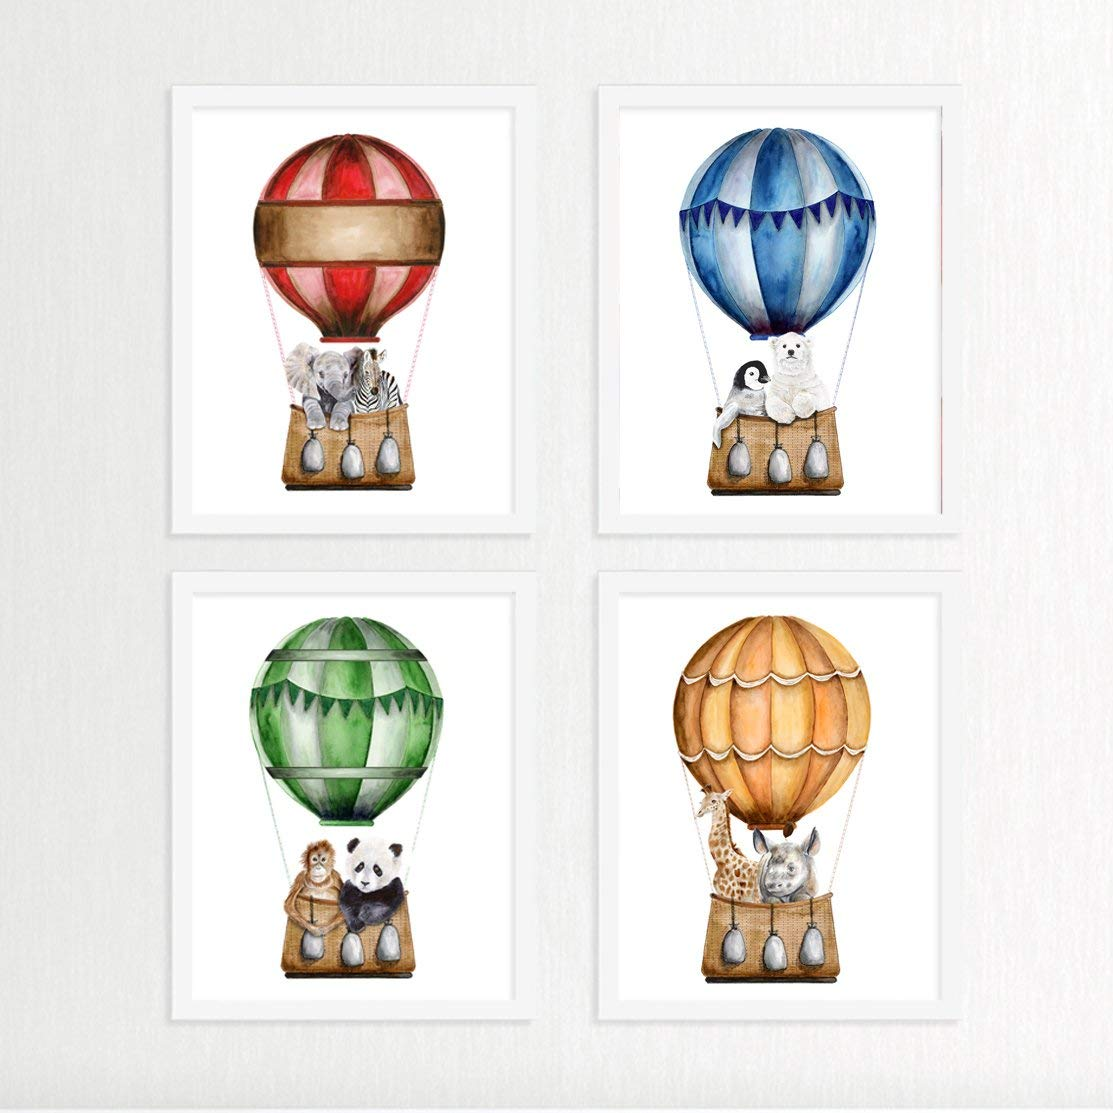 Cheap Hot Air Balloon Wall Decor Find Hot Air Balloon Wall Decor